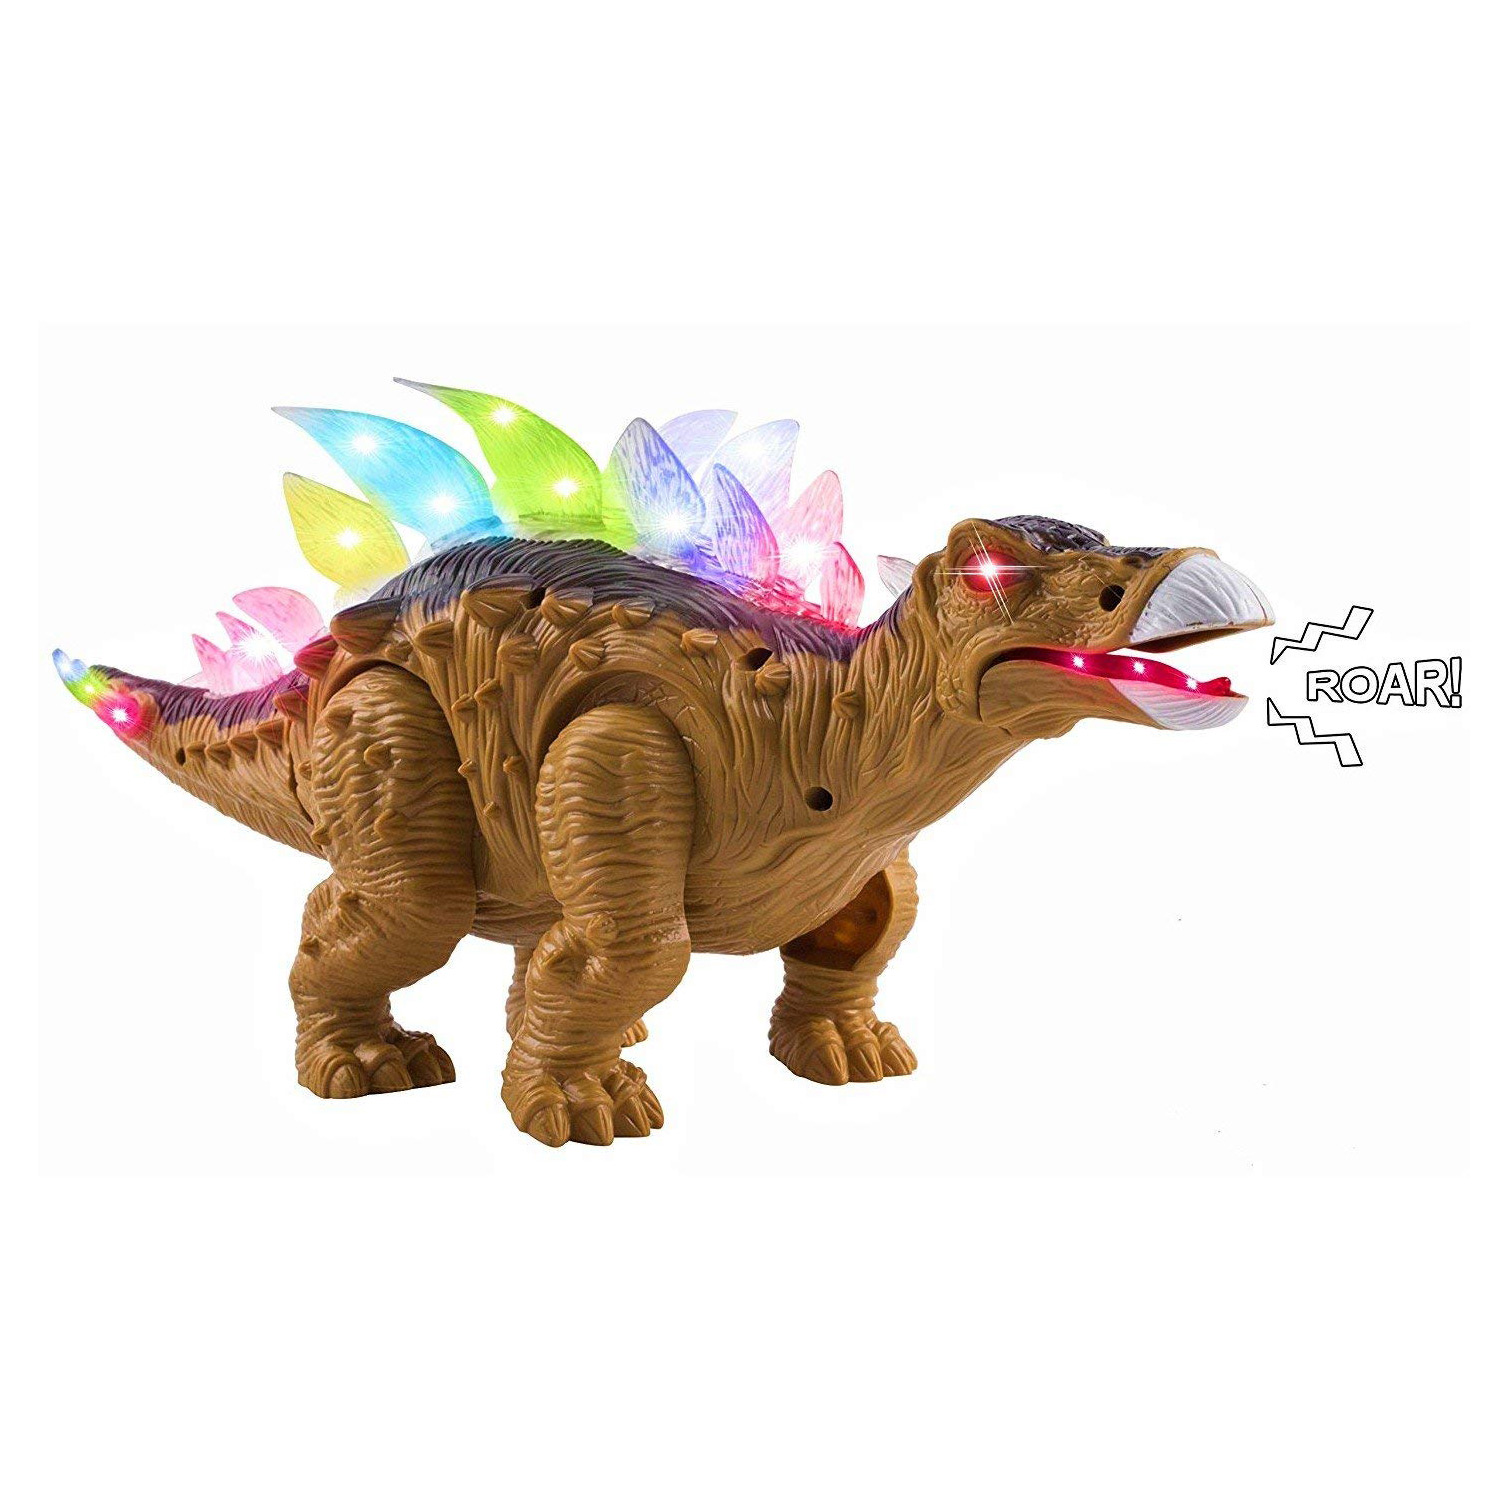 "Toy Dinosaur Stegosaurus Moveable Battery Operated Walking Large 14.5"" Length Figure With LED Lights And Sounds Real Movement Safari Perfect Size And Quality For Kids To Play With (Brown Color)"